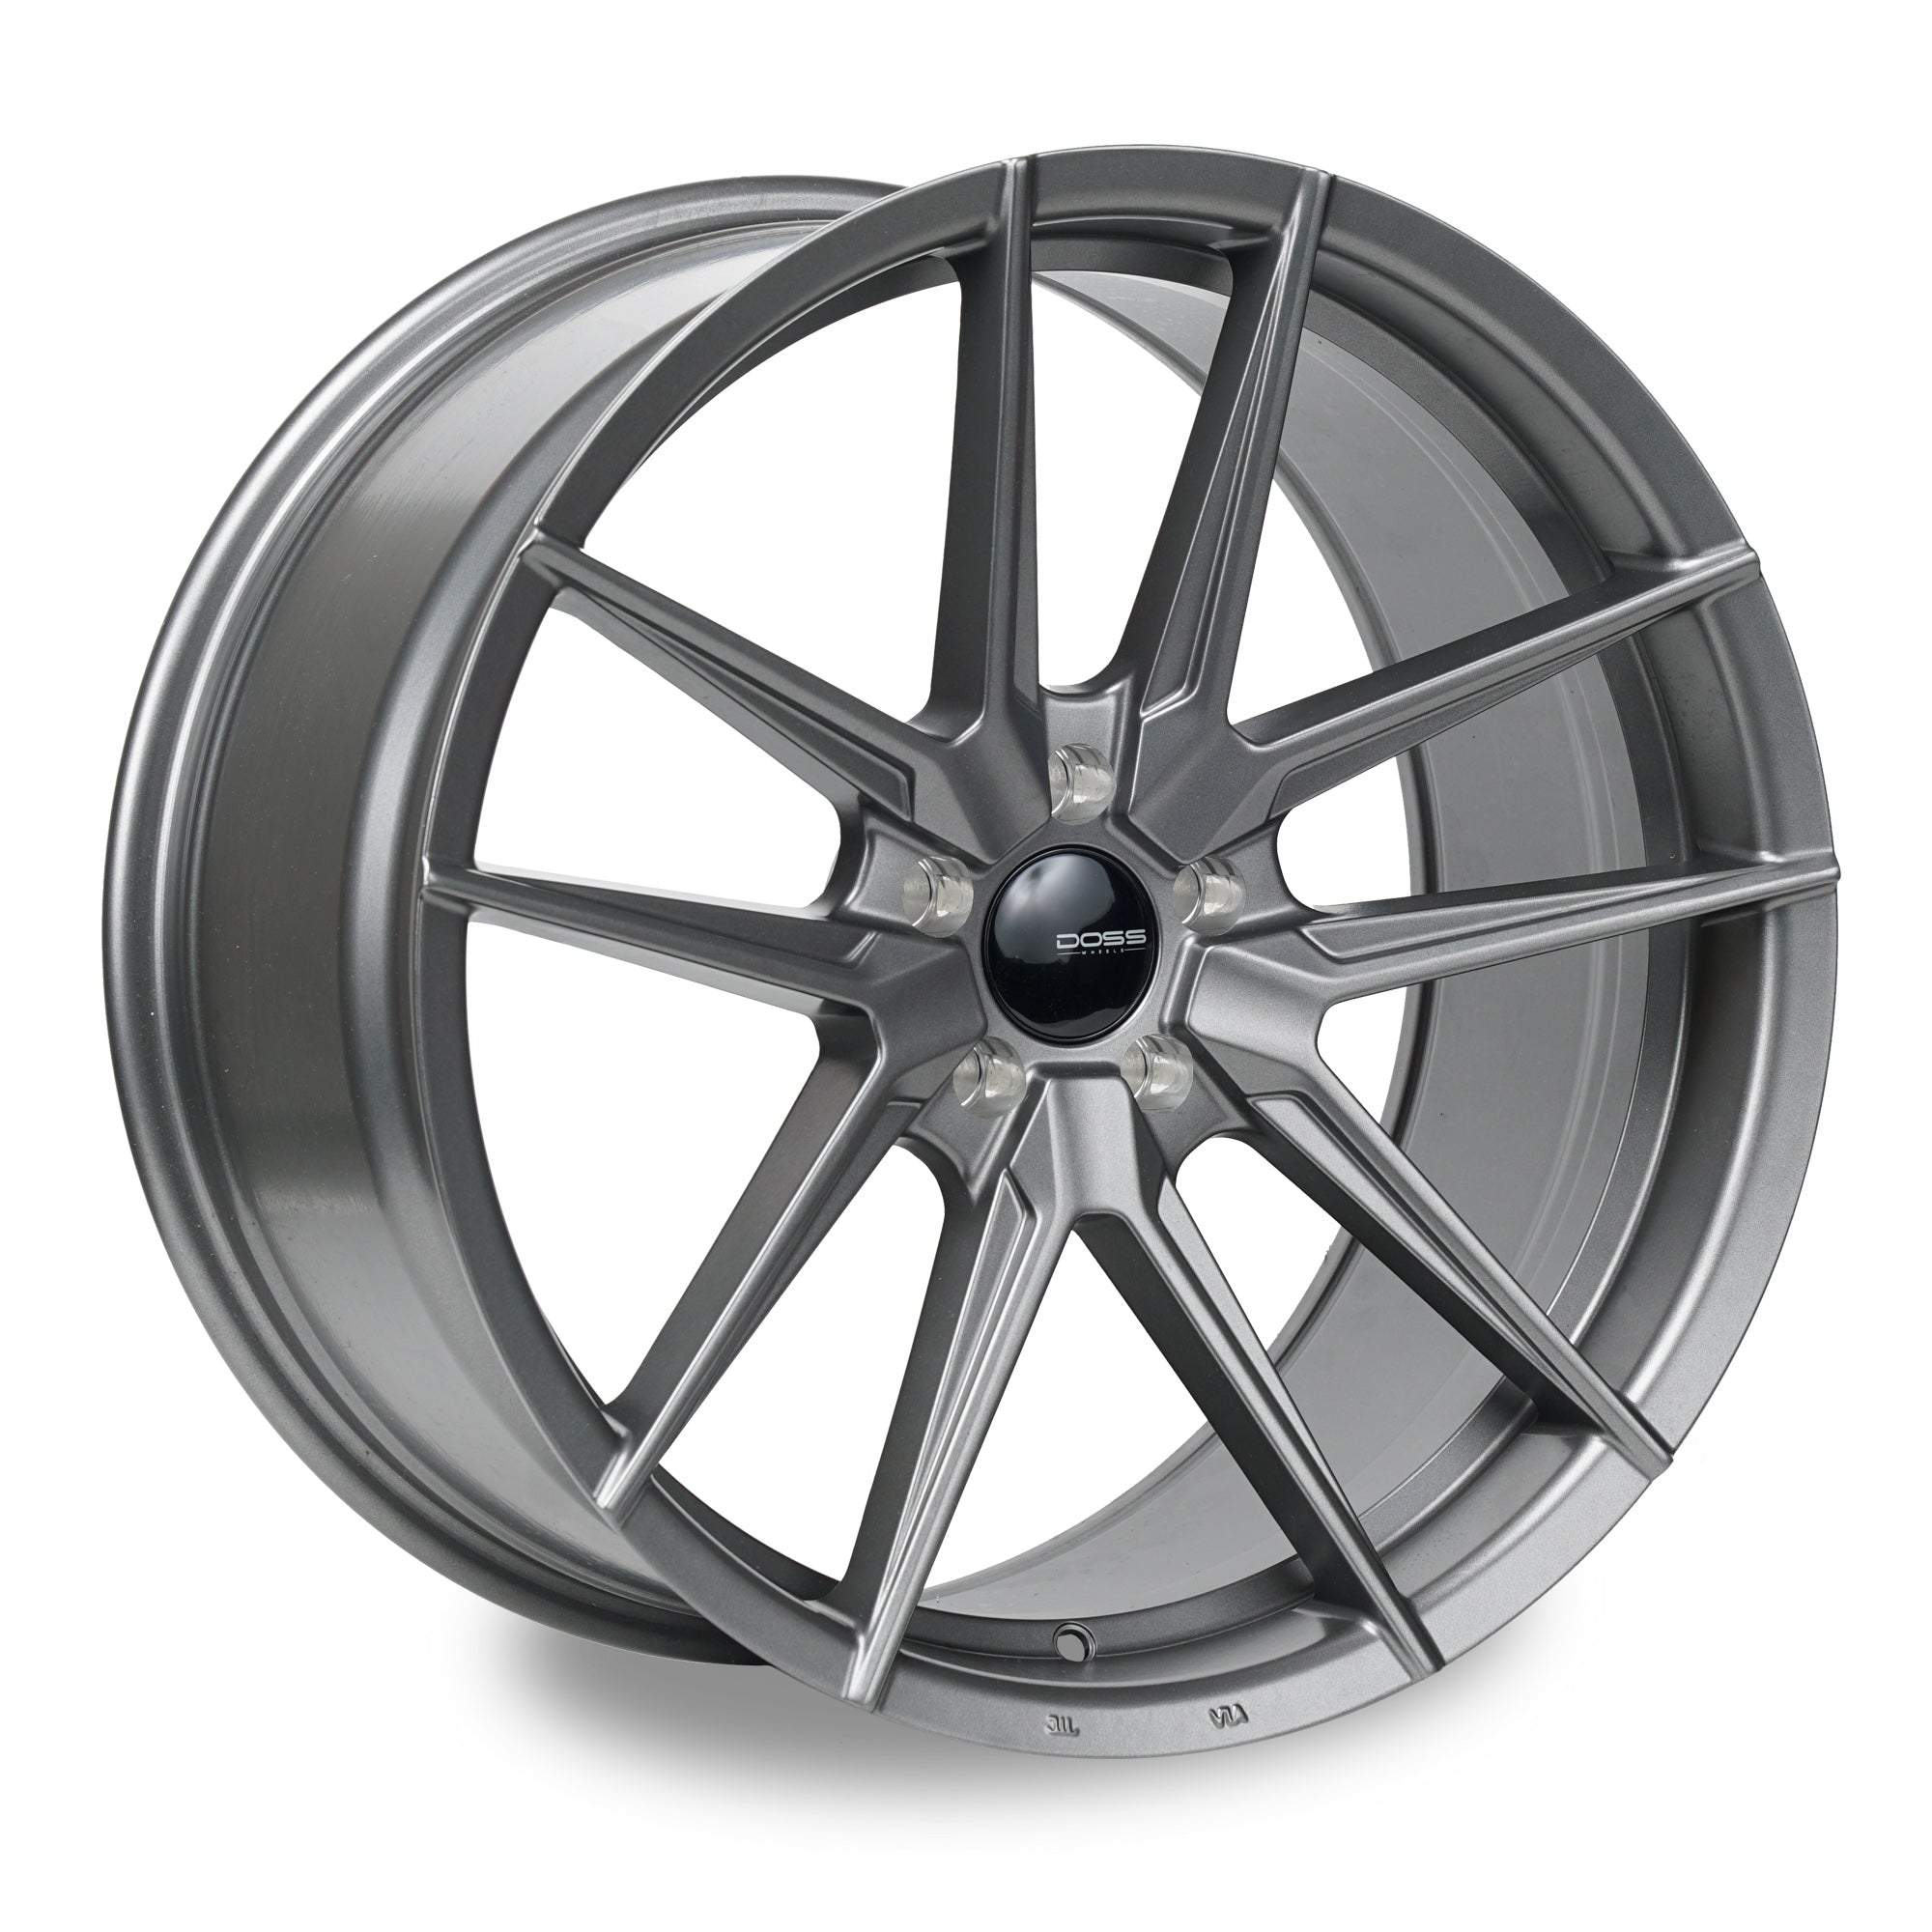 Open Box: FC10 19x8.5 +35 (5x114.3) Roto-Forged | 2015+ Subaru WRX / STi